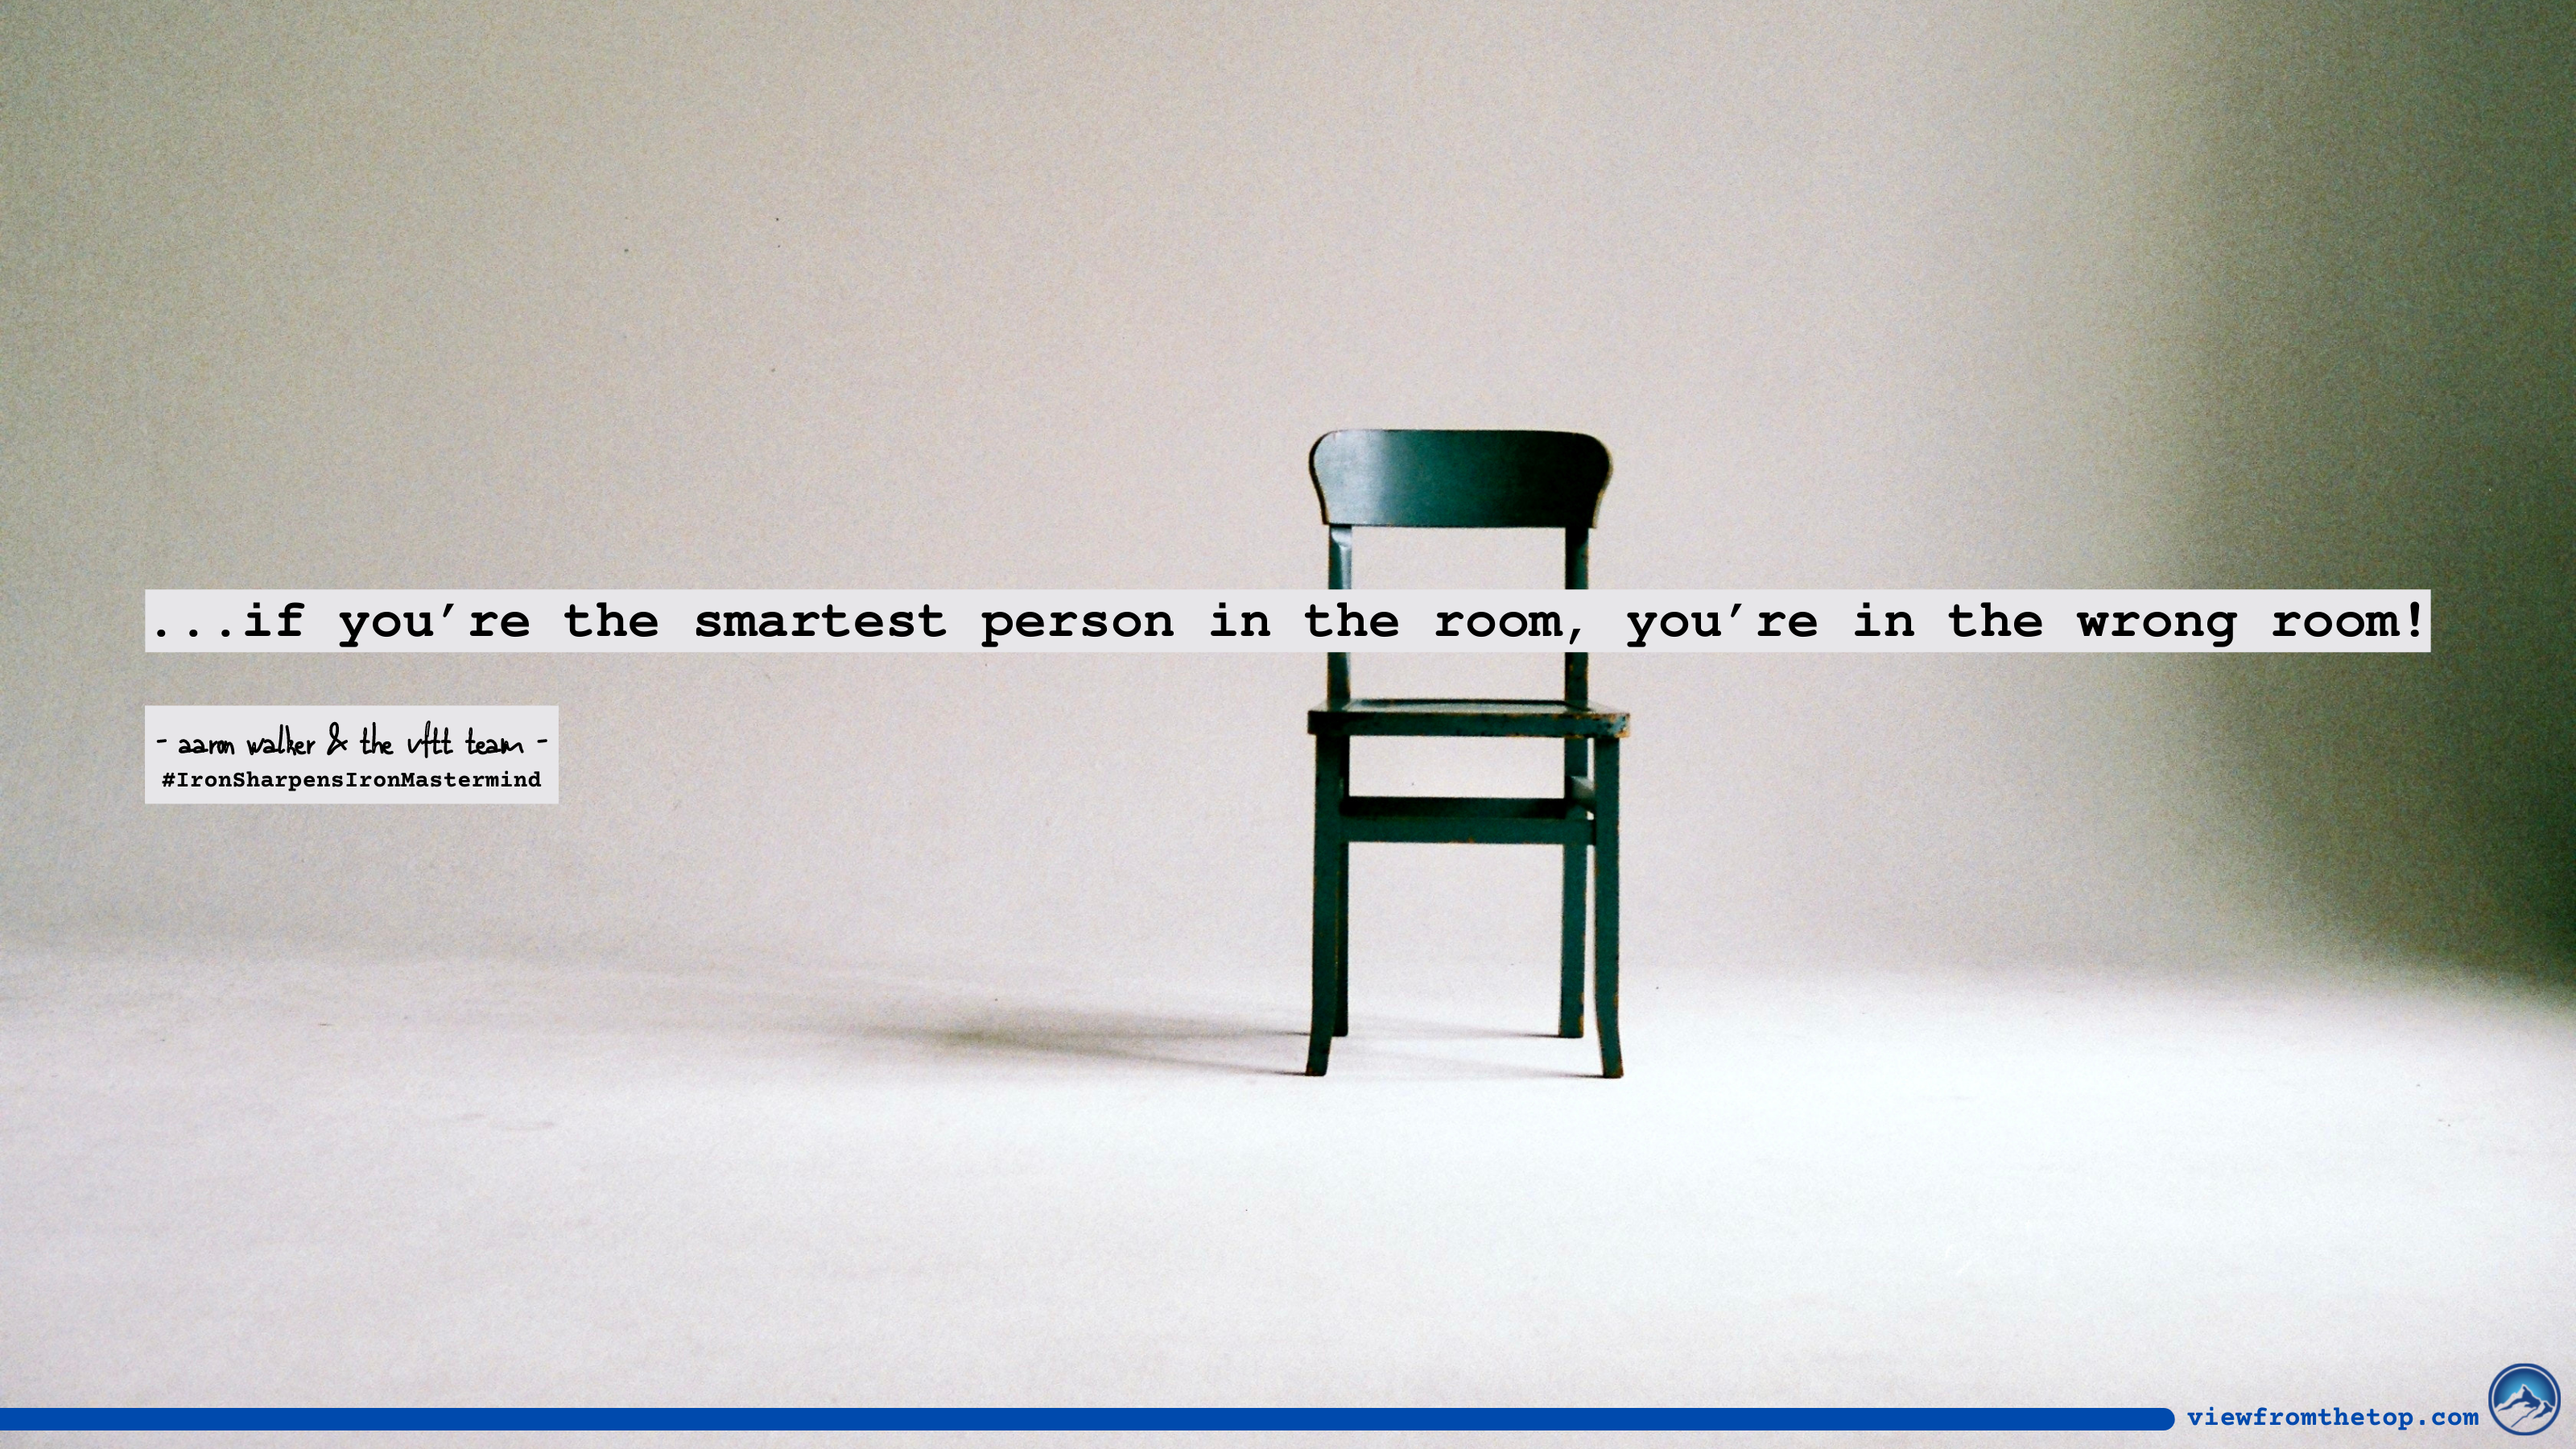 if you're the smartest person in the room, you're in the wrong room! (1)